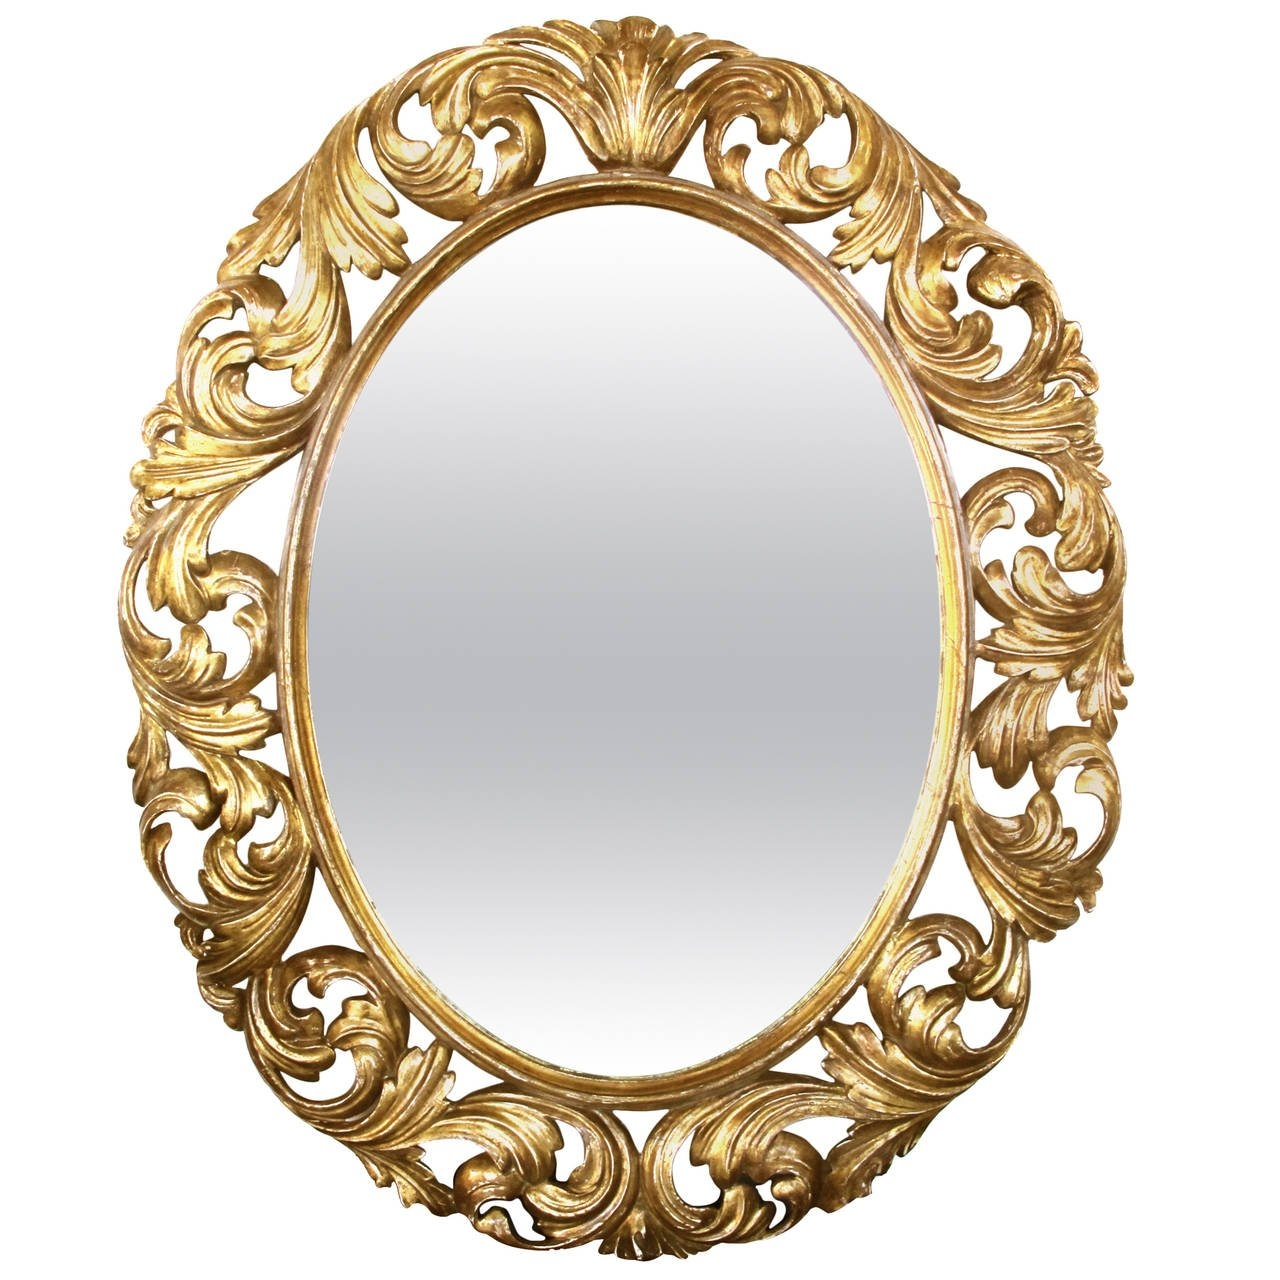 Well Carved Italian Baroque Style Oval Giltwood Mirror For Sale At With Regard To Baroque Style Mirror (Image 15 of 15)